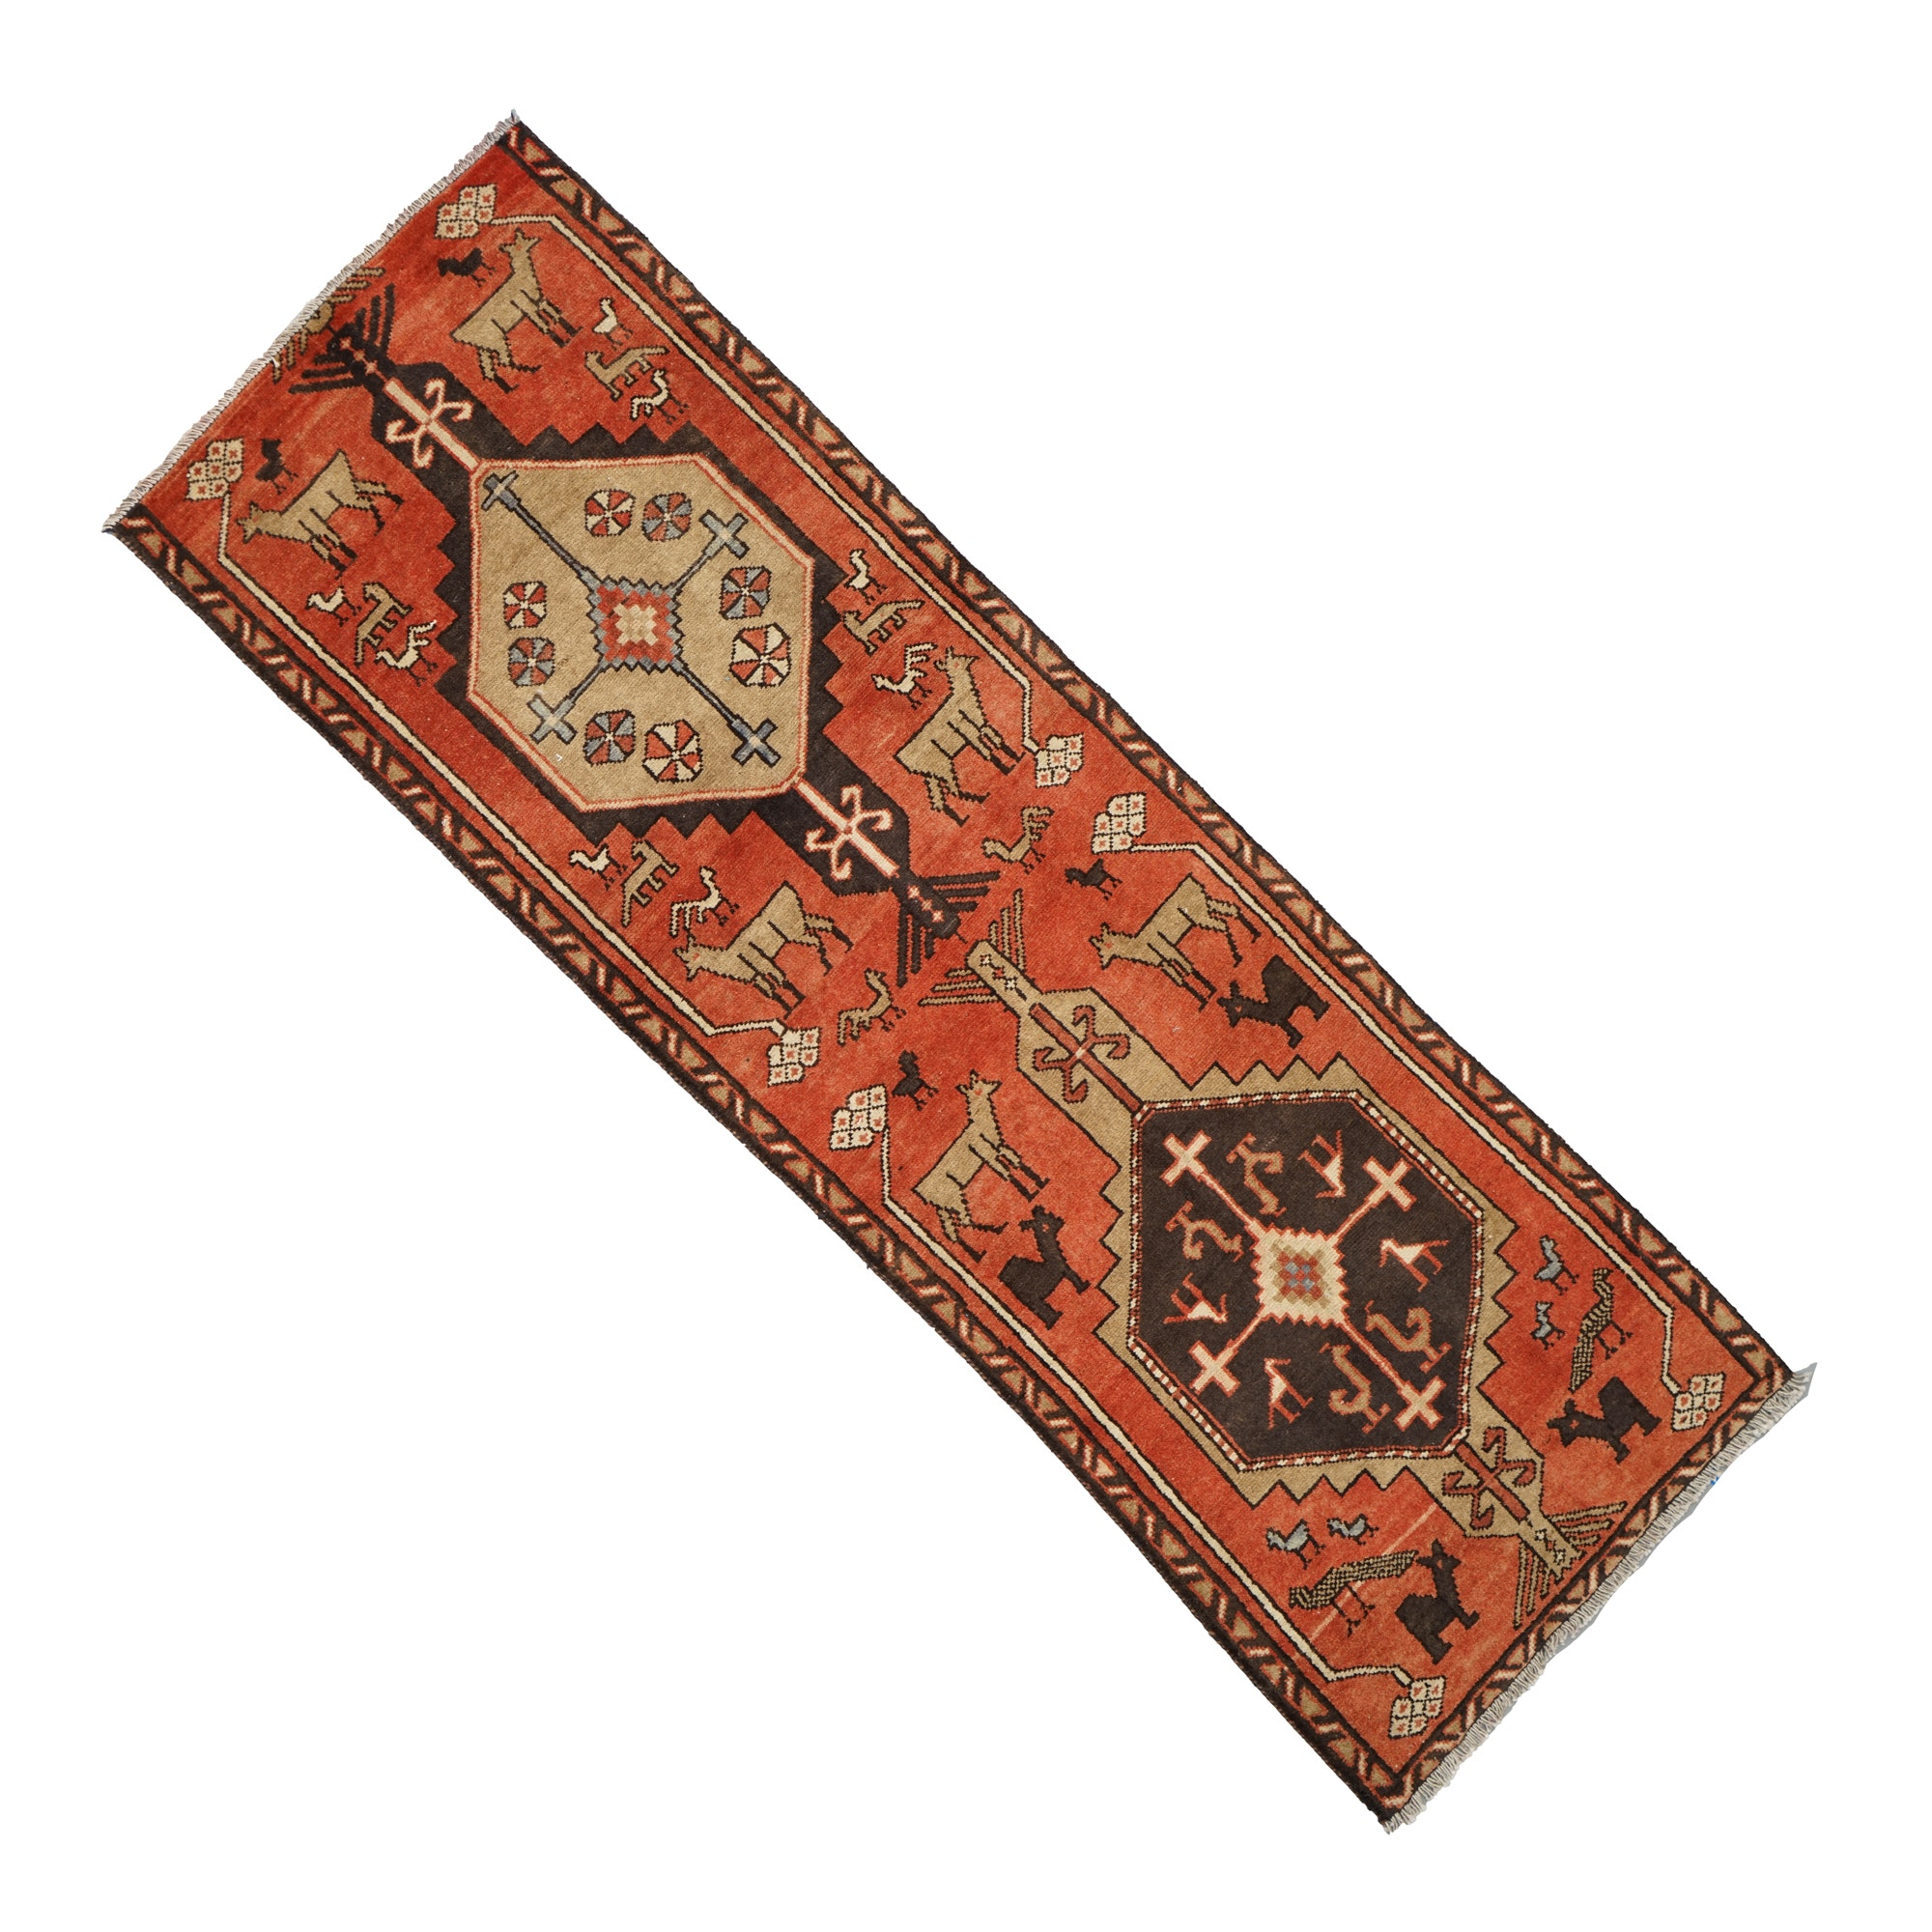 Hand-Knotted Persian Pictorial Wool Carpet Runner